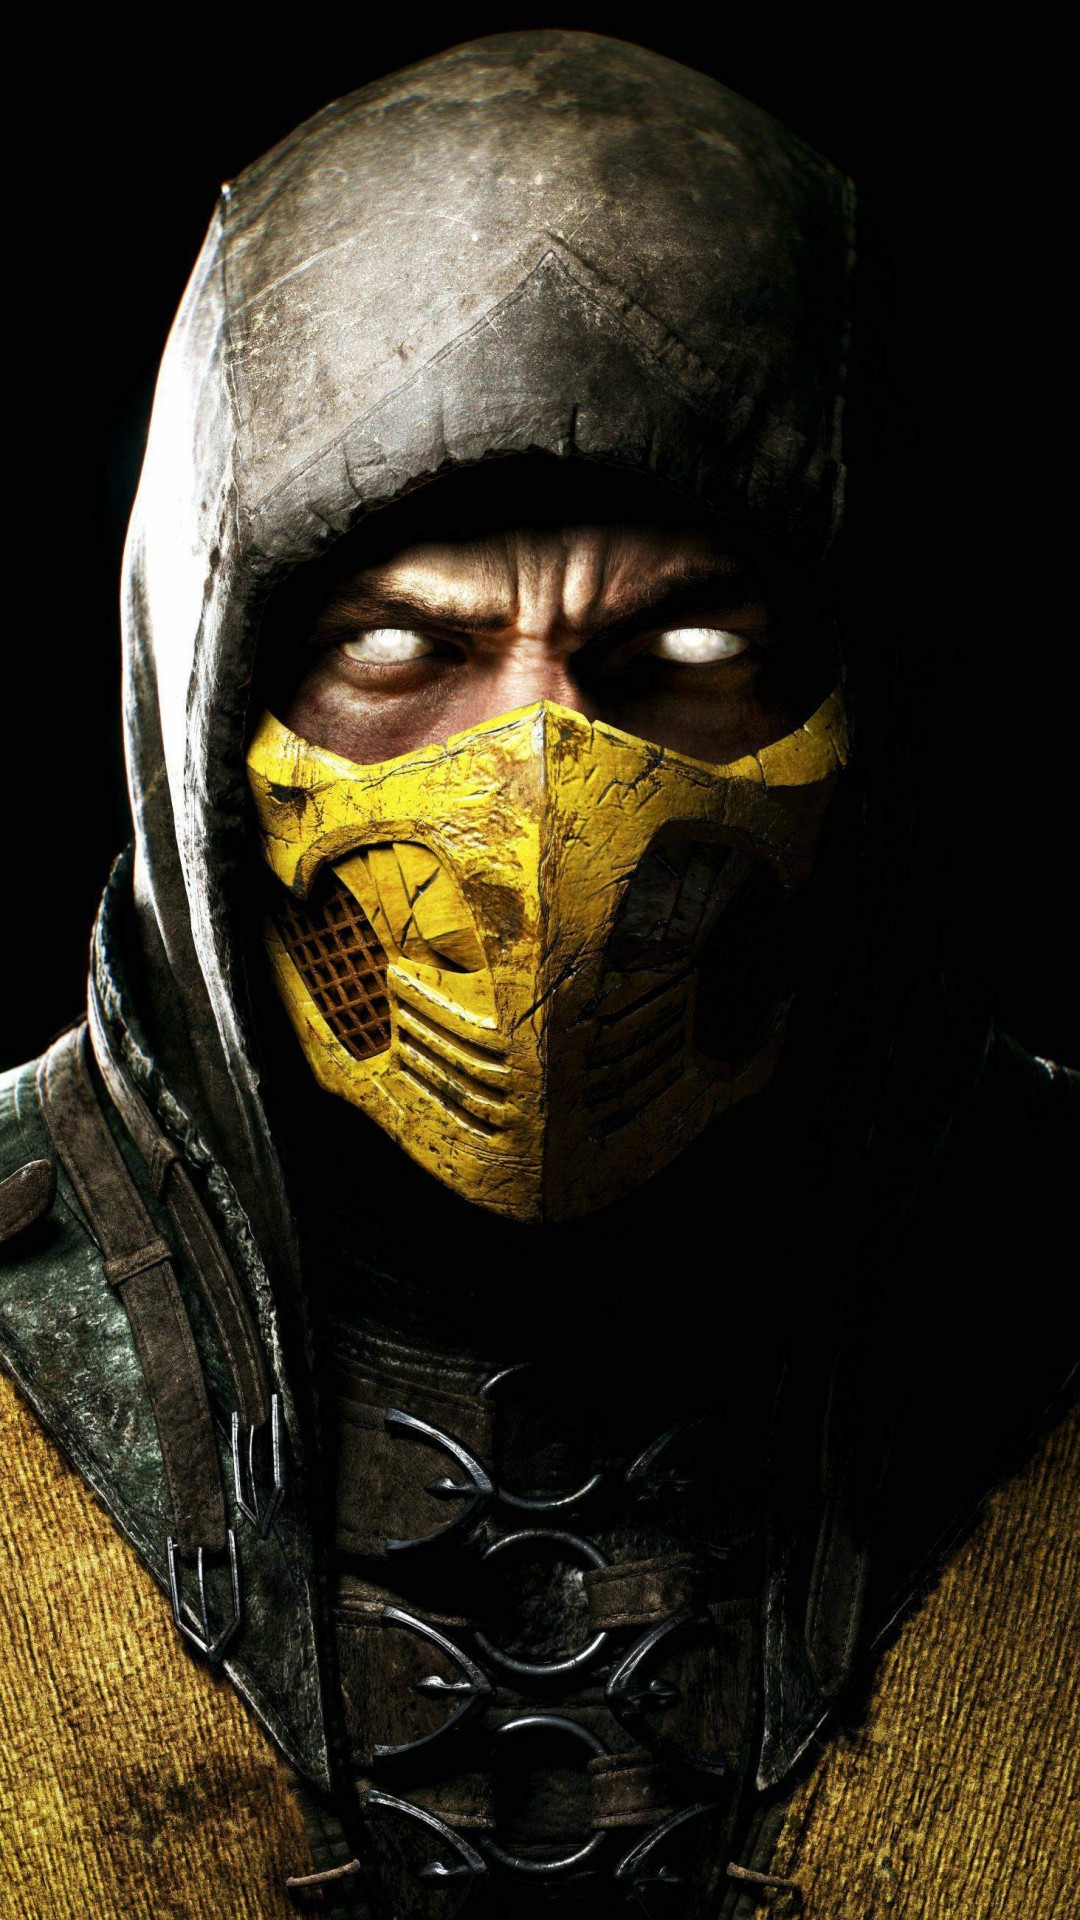 Scorpion Mortal Kombat X Wallpaper for SAMSUNG Galaxy Note 3